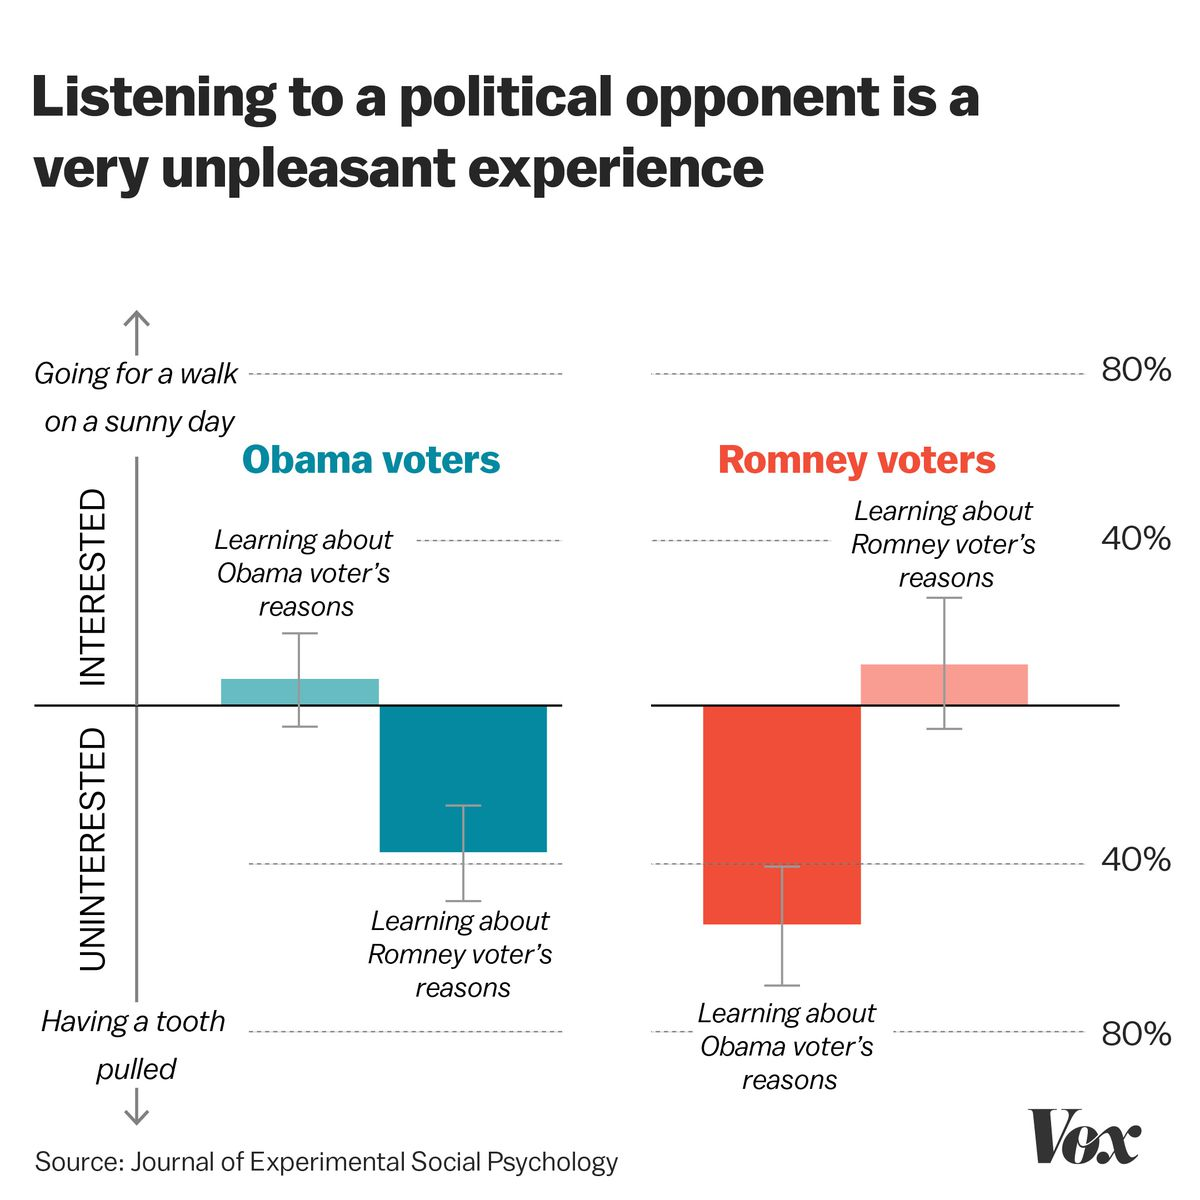 Understanding American Politics In The Trump Era  Of Psychologys  The Results Listening To A Political Opponent Isnt As Awful As Getting A  Tooth Pulled But Its Trending In That Direction Its Certainly A Lot  More